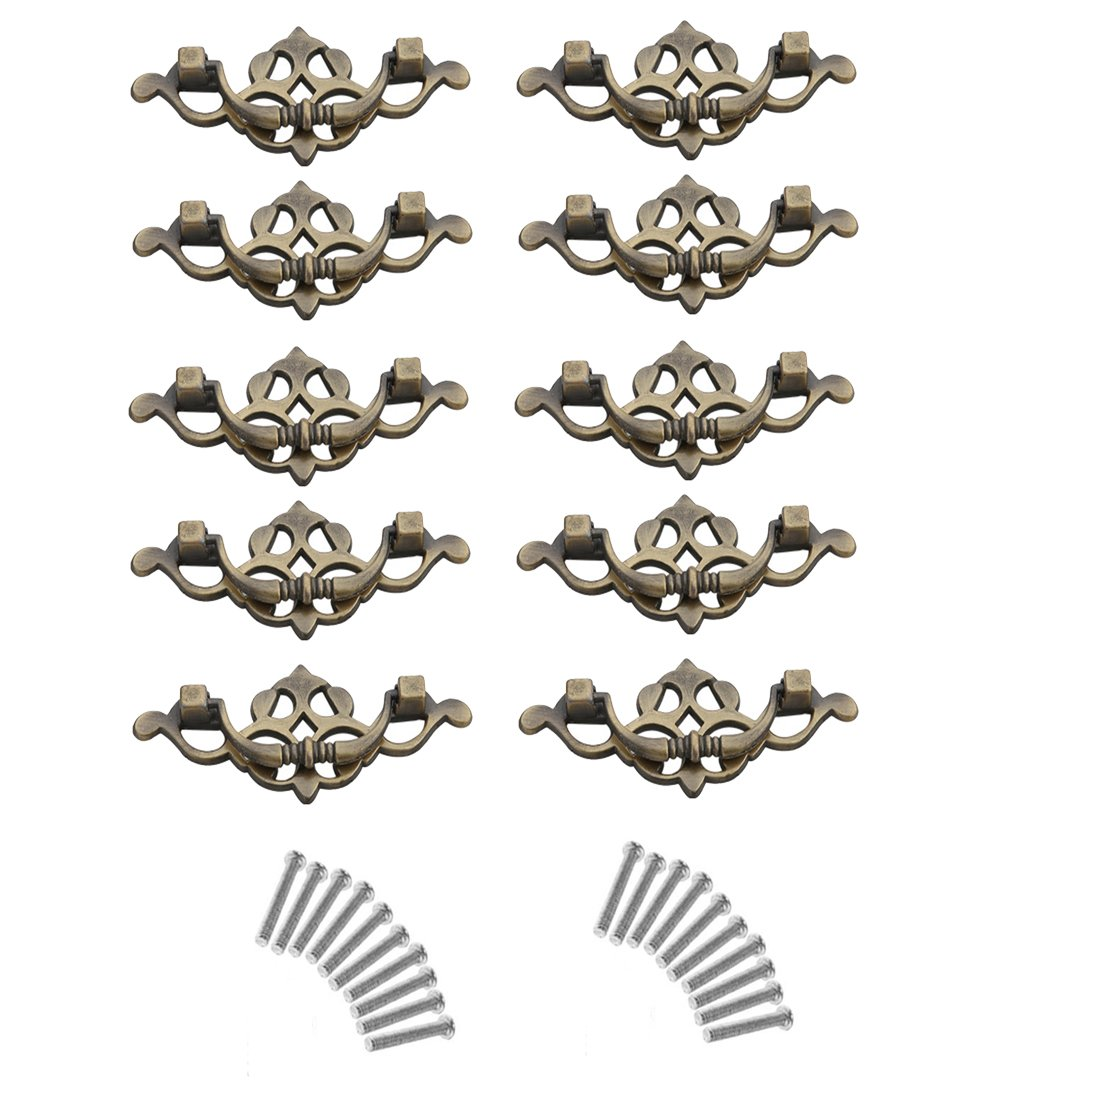 10Pcs Drawer Knobs, YIFAN 2.5inch Furniture Cupboard Handles Cabinet Drawer Wardrobe Door Pulls - Bronze